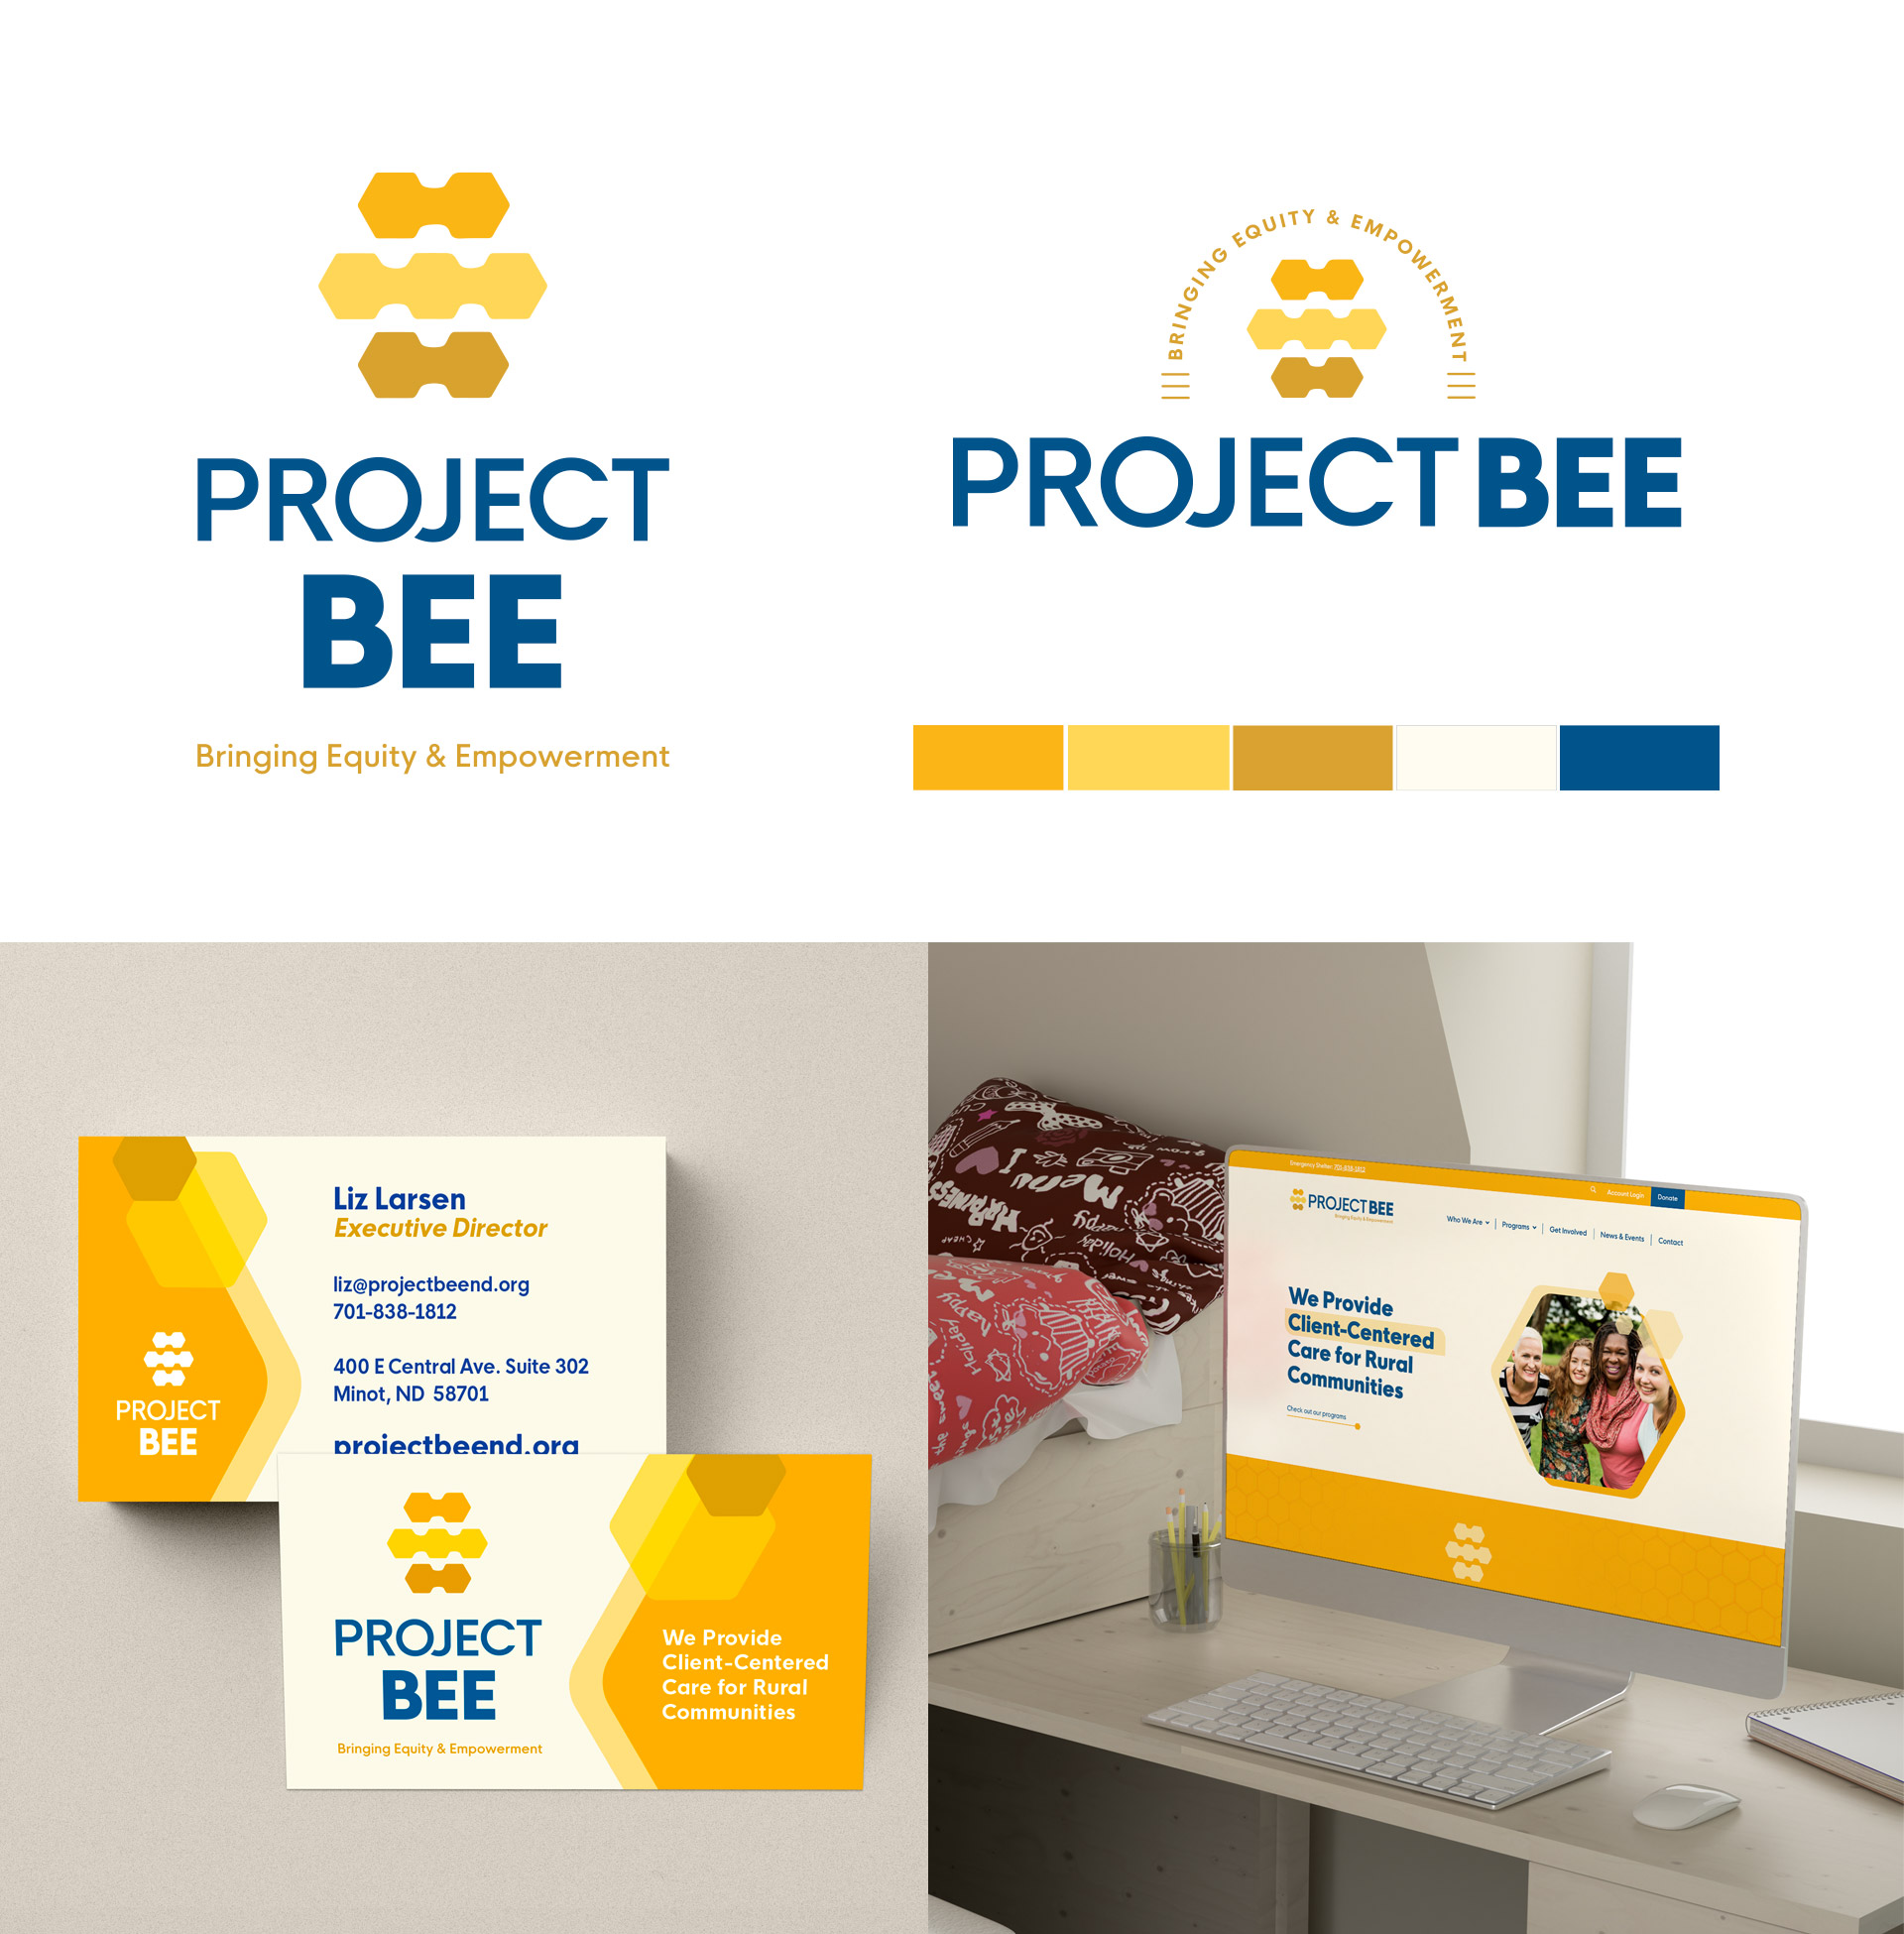 Project BEE Nonprofit designs